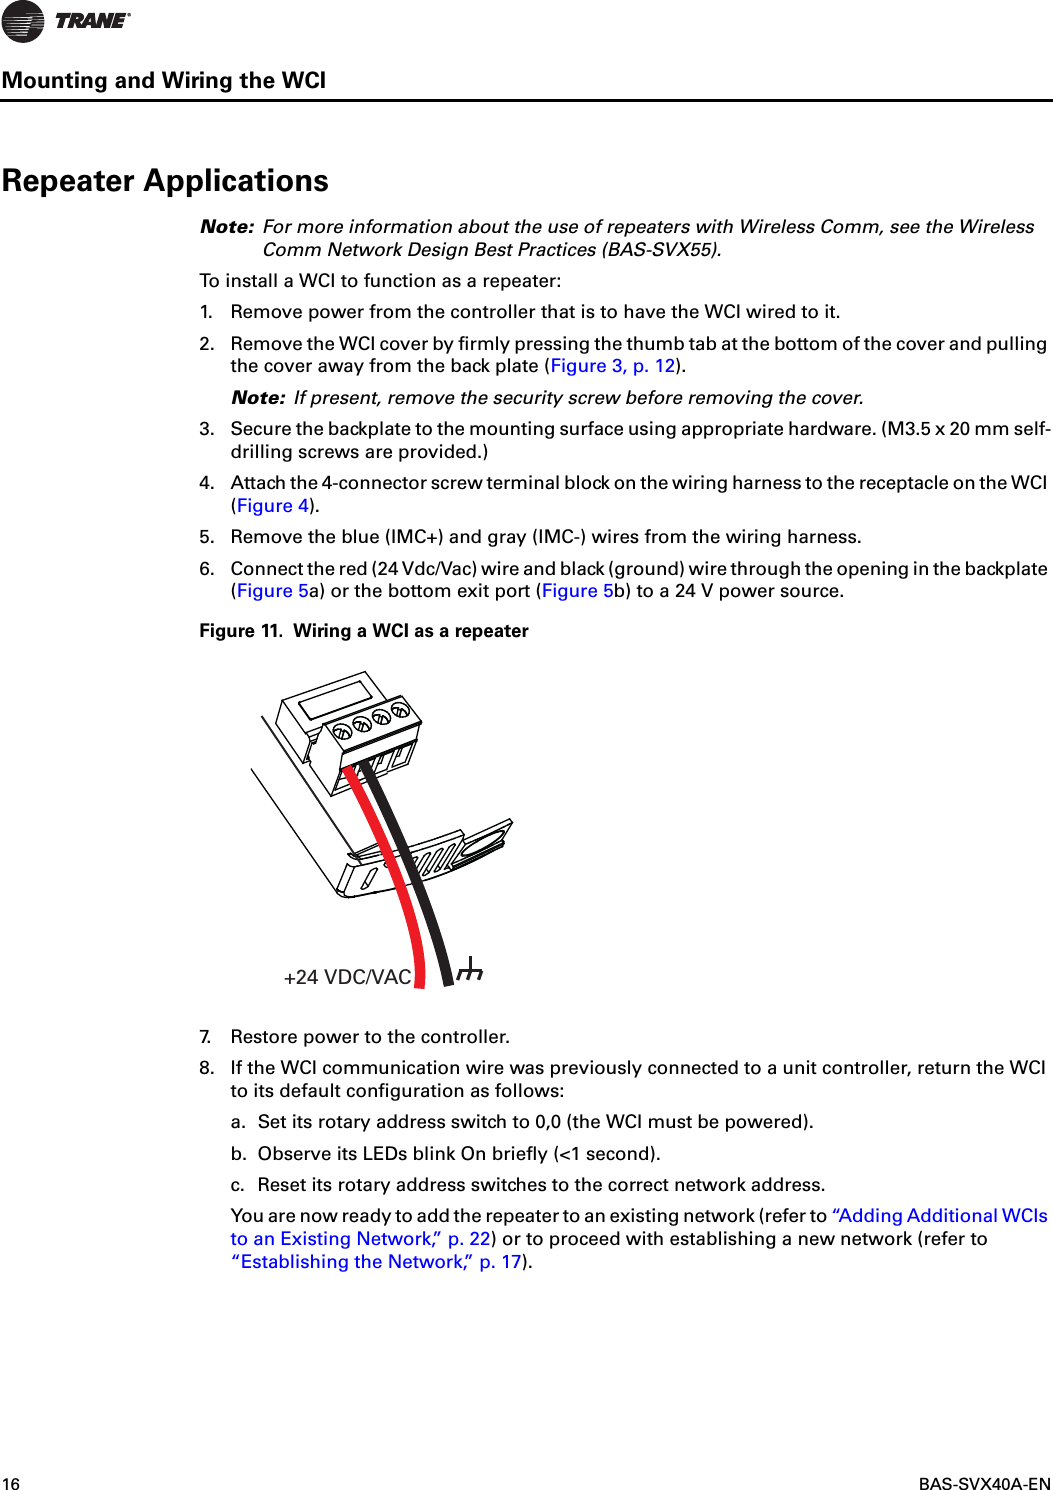 Trane Us 251701 Wireless Communications Interface User Manual Wci Svx Bas Control Wiring 16 Svx40a Enmounting And The Wcirepeater Applicationsnote For More Information About